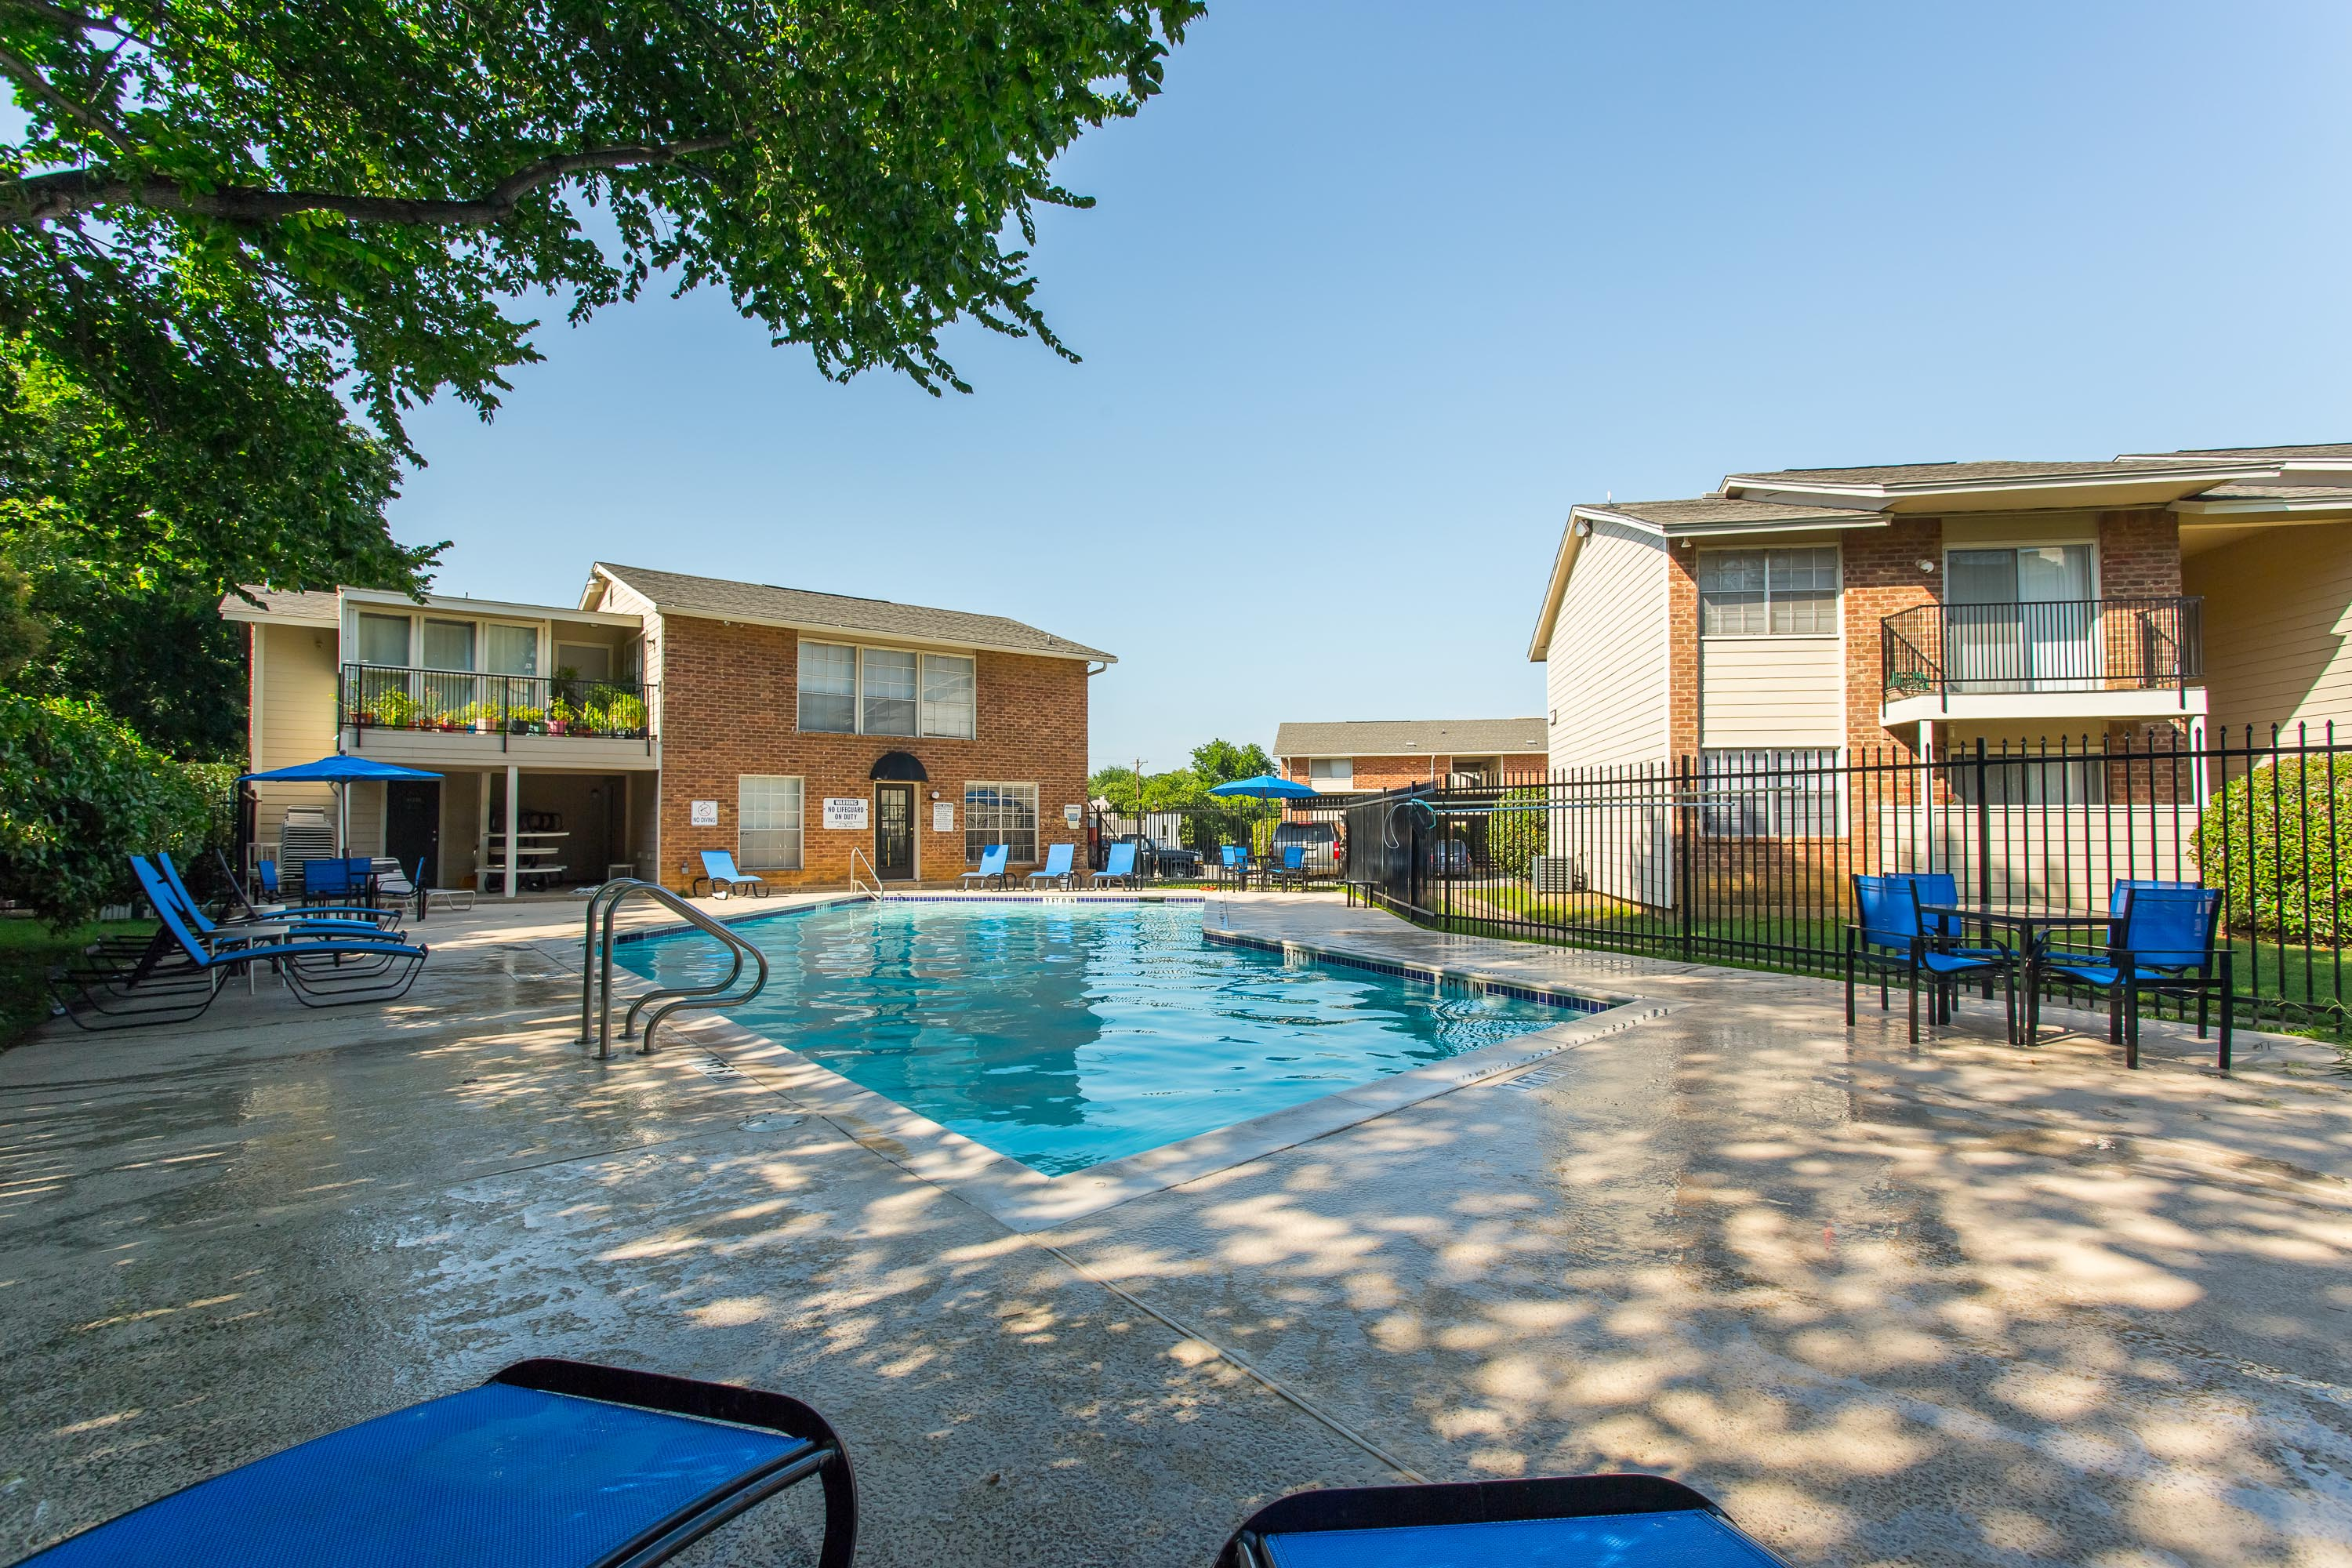 Garage Apartments For Rent Grapevine Tx Marina Del Rey Apartments Apartments In Grapevine Tx